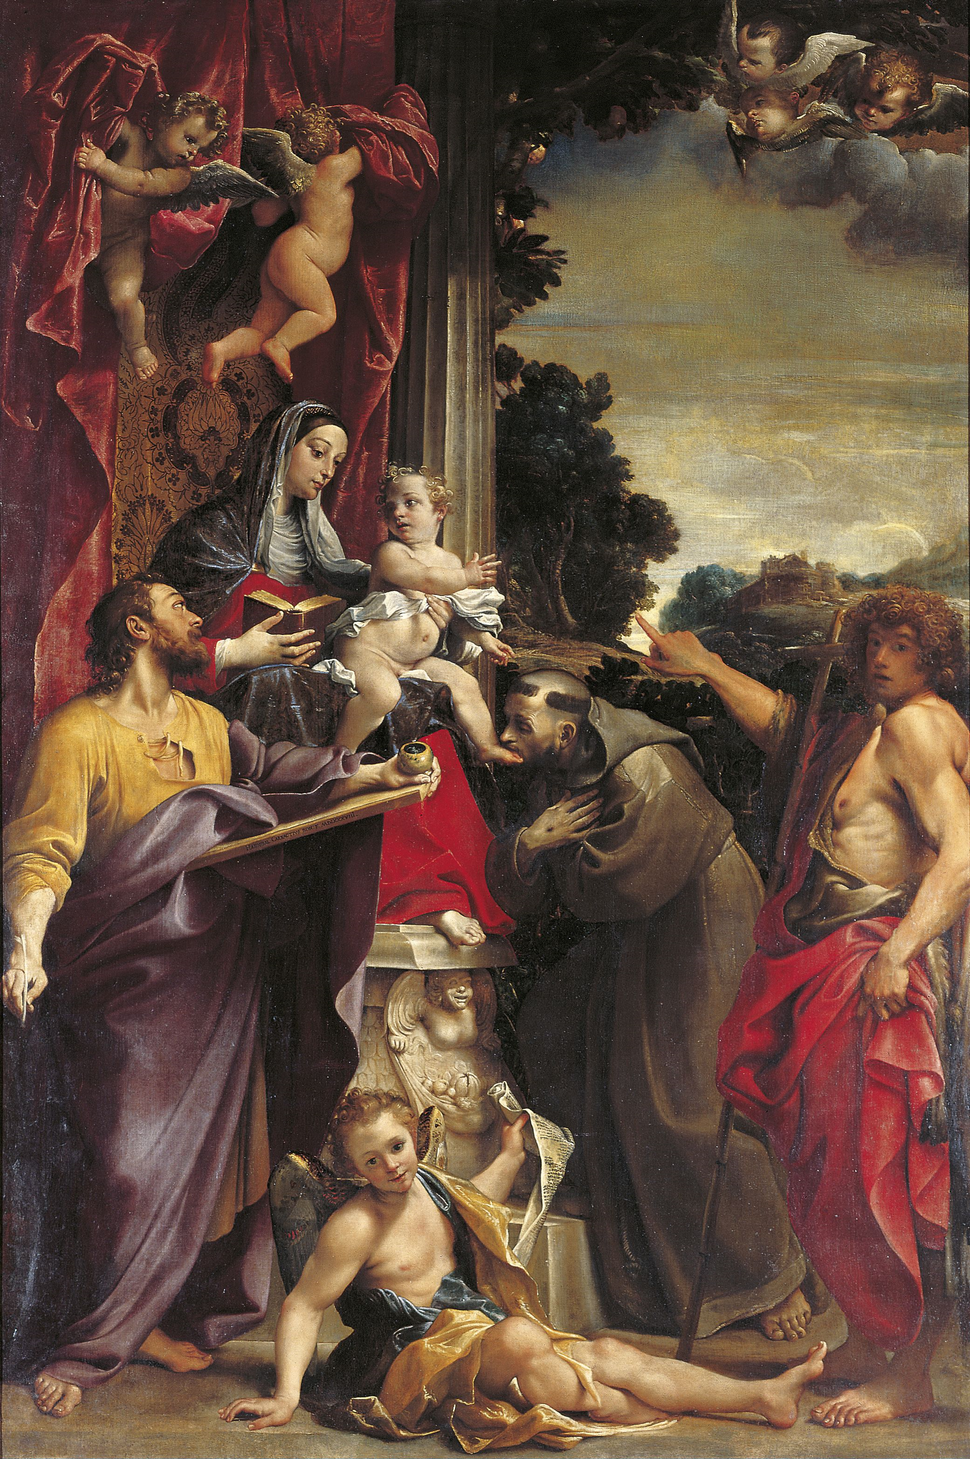 Madonna Enthroned with Saint Matthew, Annibale Carracci, 1588